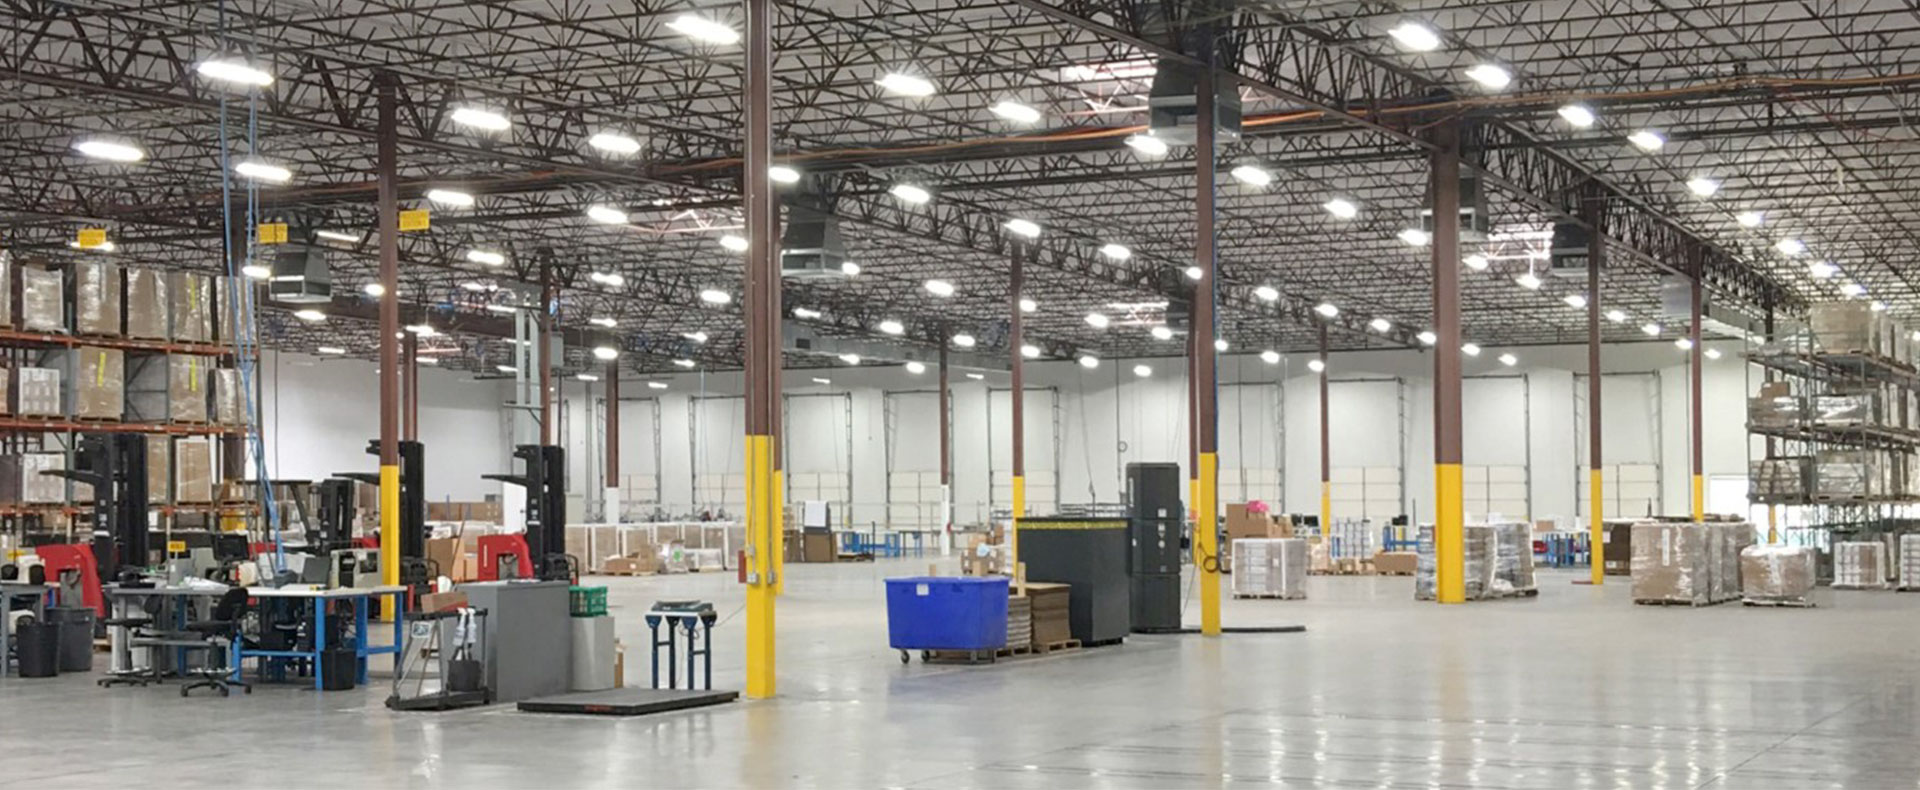 Interior Houston Electrical Warehouse